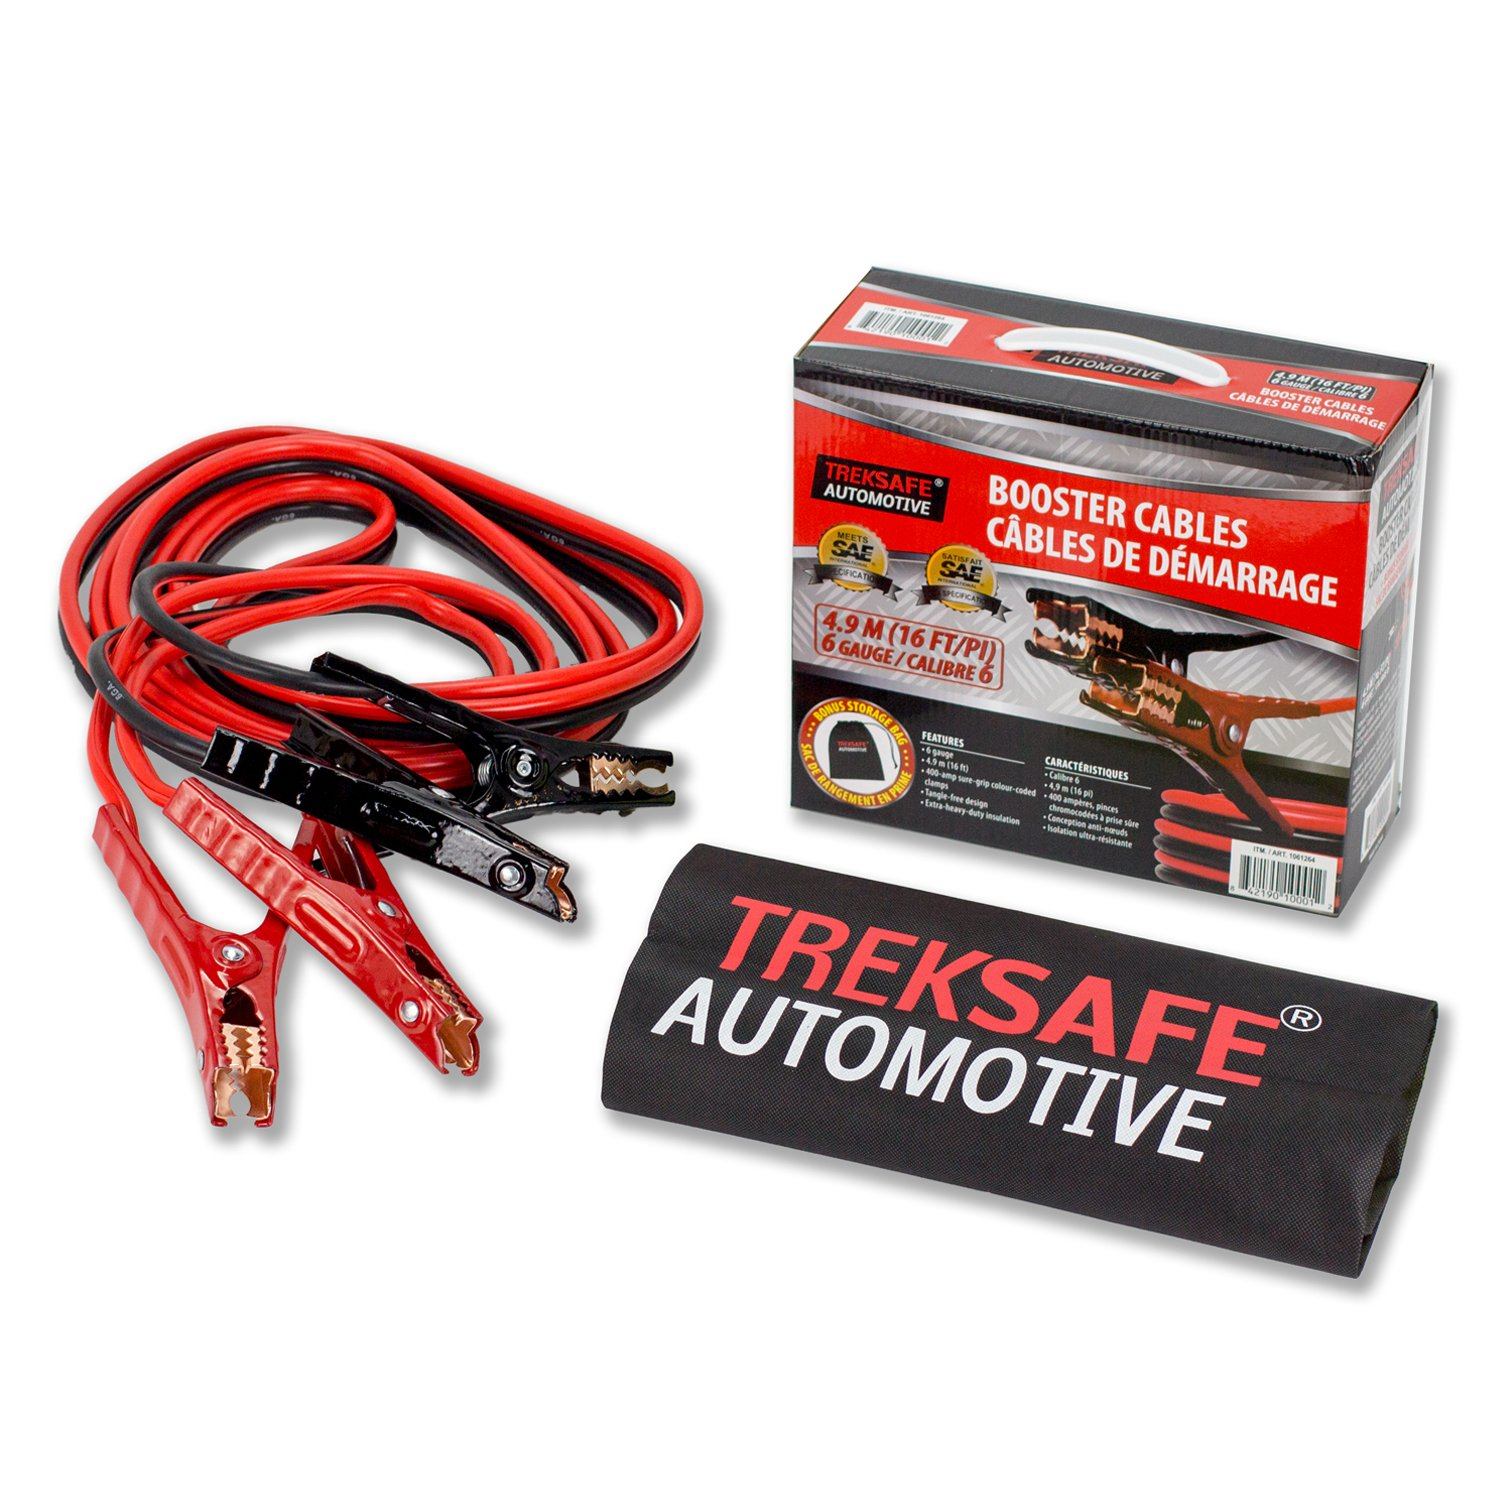 Treksafe 6 Gauge Booster Cables - Heavy Duty, 16 feet with a Storage Bag Treksafe Automotive